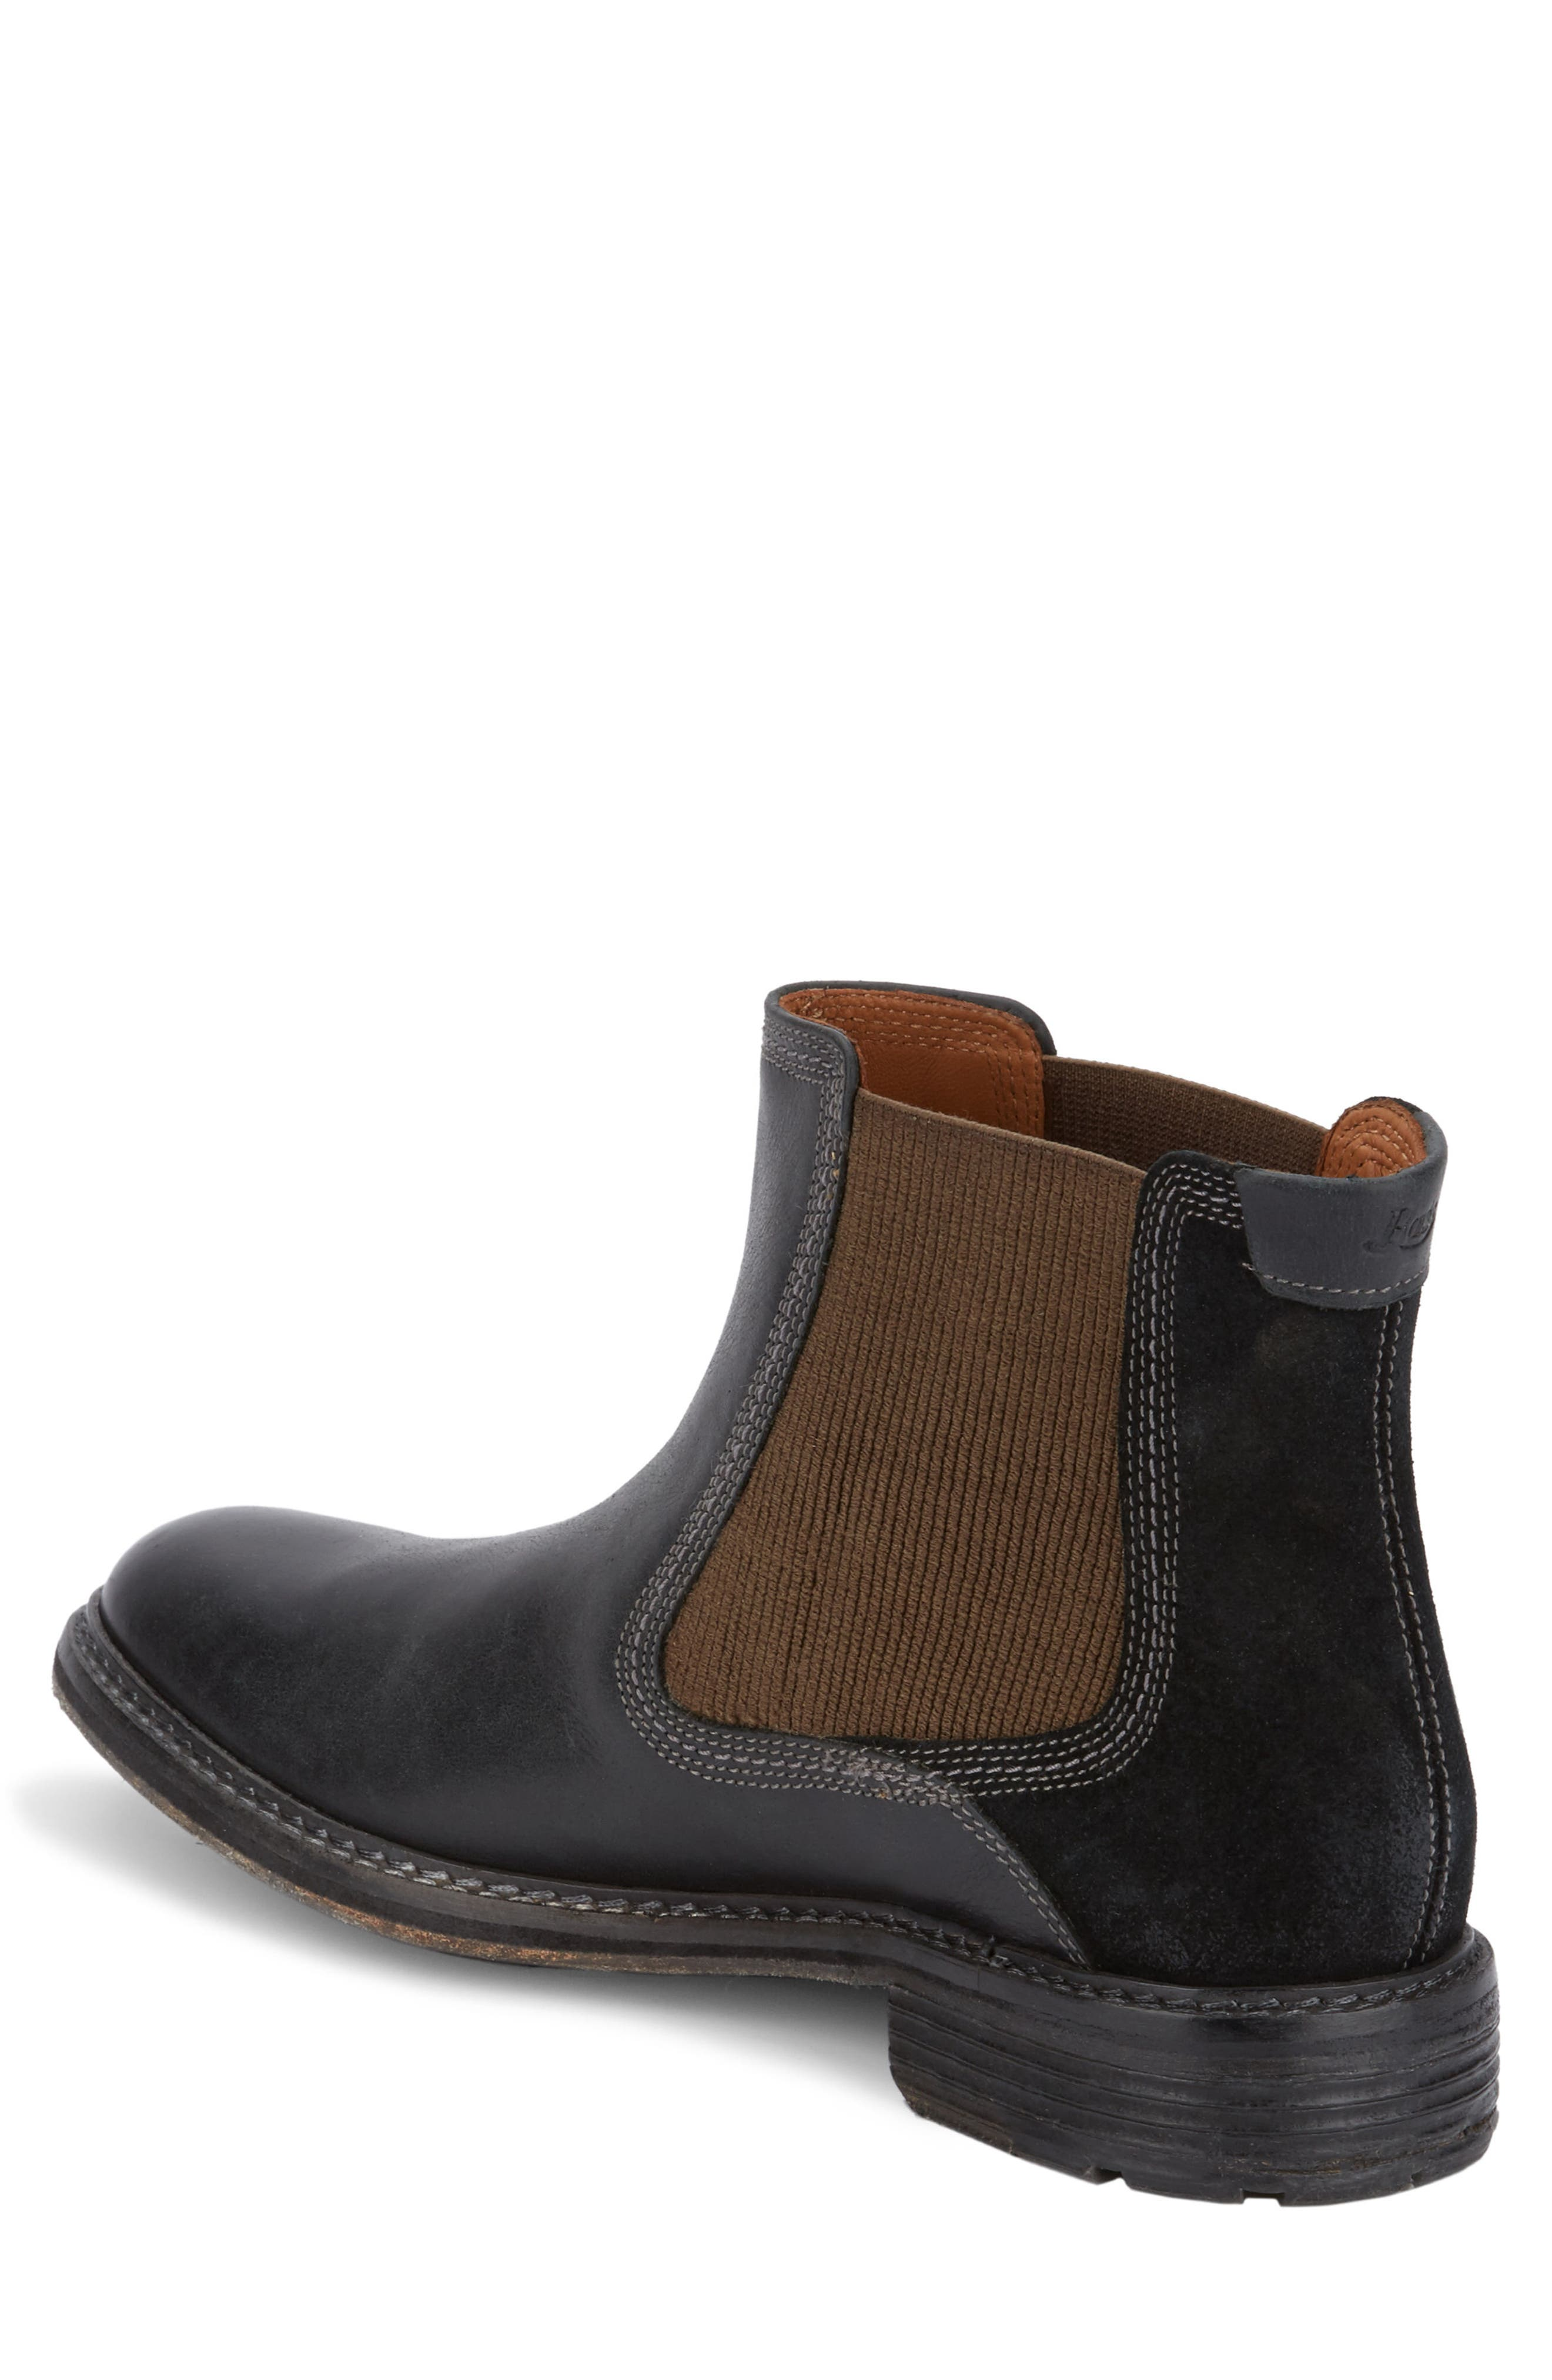 Hendrick Chelsea Boot,                             Alternate thumbnail 2, color,                             Black